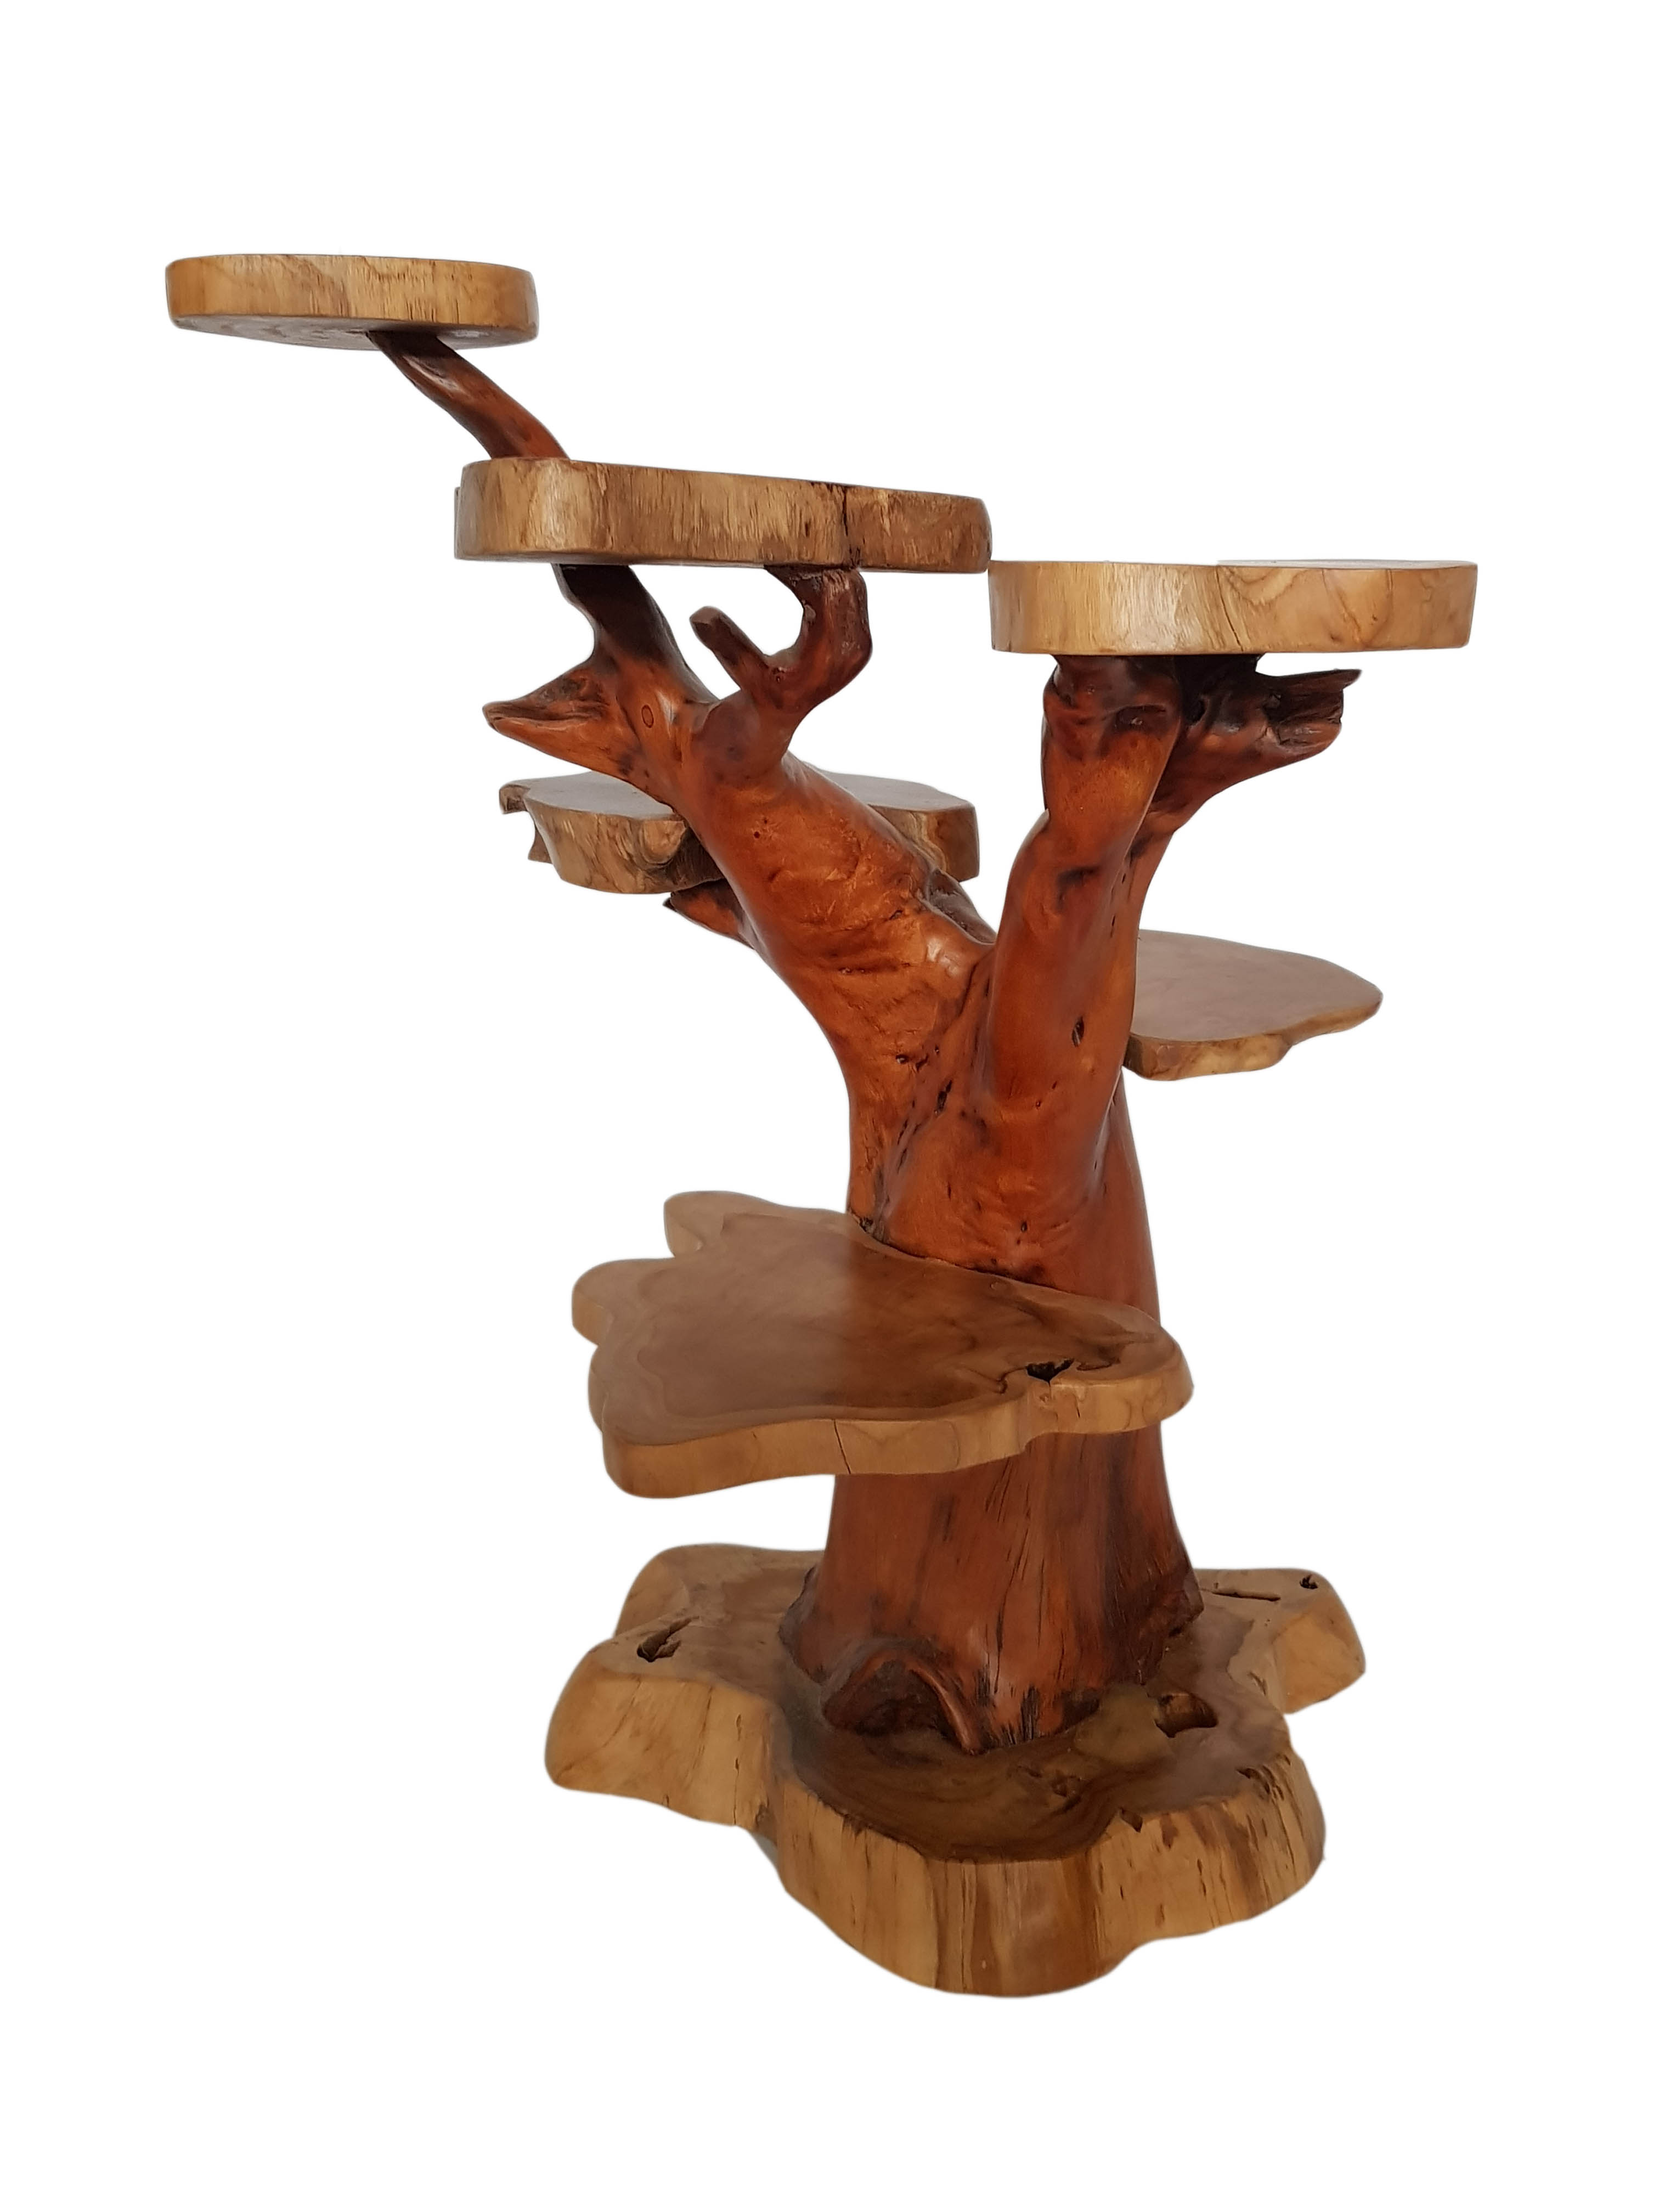 "cat tree, cat tree diy, cat tree amazon, cat tree house, cat tree king, cat tree uk, cat trees for large cats, cat tree walmart, cat tree canada, cat tree diy ideas, cat tree diy ikea, cat tree diy reddit, cat tree diy pinterest, cat tree diy pvc, cat tree diy parts, cat tree diy materials, cat tree house diy, cactus cat tree diy, christmas tree cat, christmas tree, cat in tree, cat house, cat tree house, tree house, amazon cat tree, diy cat tree, cat trees, cat in a tree, best cat tree, dollar tree, large cat tree, tree cat tower, cat tower, chewy cat tree, black cat tree, chewy, cat tree walmart, walmart cat tree, petsmart cat tree, cat condo, cat family tree, cat tree petco, cat furniture, how to keep a cat out of your christmas tree, enchanted cat tree, on2pets luxury cat tree, cat friendly christmas tree, dollar tree cat food, christmas tree for cat owners, sams club cat tree, cat tree king, how to keep a cat out of a christmas tree, black friday cat tree, cat hanging from tree, wall mounted cat tree, how to keep cat out of christmas tree, how to keep a cat out of christmas tree, cat tree that looks like a tree, savannah cat, how to keep cat away from christmas tree, wall cat tree, songmics cat tree, luxury cat tree, chewy cat tree, cat family tree, chewy, cat in christmas tree, christmas tree, cat christmas tree, cat in tree, tree house, cat tree house, cat house, cat tree amazon, cat in a tree, cat trees, best cat tree, diy cat tree, dollar tree, large cat tree, cat tree walmart, cat tree chewy, cat tree condo, cat condo, black cat tree, cat family tree, cat tree petsmart, modern cat tree, cat furniture, tree cat tower, feandrea cat tree, luxury cat tree, on2pets luxury cat tree, driftwood cat tree, cypress tree, cat tree that looks like a tree, cat tree king, cat safe christmas tree, wayfair cat trees, cat christmas tree meme, calico cat, cat tree chewy, christmas tree for cat owners, floor to ceiling cat tree, custom cat tree, how to keep a cat out of your christmas tree, enchanted cat tree, cat tree topper, modern cat tree, cat palm tree, • EXCLUSIVE LUXURY FOR CATS: Your feline friends need a cozy home of their own to play, take a nap or jump around; this cat house is sure to be their dream-come-true • MULTI-LAYERED PLAYHOUSE: 2 roomy condos offer luxurious napping experience; 3 plush perches with raised edge allow your cat rest on its head while watching over the house; sisal-covered slope adds so much more fun for playtime • STABILITY IS ALWAYS PRIORITY: Constructed by CARB-certified natural particle boards and strengthened with battens at the bottom to ensure overall stability; anti-toppling fittings are included for double security • SISAL-COVERED SCRATCHING POSTS: Reinforced posts (dia. 3.38"") are wrapped with natural sisal rope to allow nail scratching and promote exercising; this cat tree is the perfect spot for your cats to jump around • NOT SATISFIED YET? FEANDREA provides you with professional customer service both before and after your purchase; don't wait any longer, add this to your home today! • Made from high-quality manufactured wood to create a durable and sturdy cat tree your furry friend will love for years to come • Has four elevated platforms, which can accommodate four cats in various positions for an endless amount of fun! • Easy to assemble with step by step instructions for a stress-free set up process • Premium material is used to cover the structure including sisal rope and faux fleece • Multi-purpose cat tree can be utilized for playing, scratching, climbing, sleeping, and exercising • Cat trees are a vertical territory that allows cats to enjoy their own space and allows them to have their own home inside of yours • They also serve as a safe haven for timid cats, allowing your kitty to stay relatively out of the open while maintaining a sense of security. • Cat trees promote exercise, giving your kitty a good place to climb up and down, run around and just be as active as they want • Posts are covered in natural sisal rope which your cat will love to claw and should keep your kitty from clawing your furniture • This tree sports 1 hanging toy, and multiple levels and perches for extra fun for your kitty • This attractive 62"" cat tree can keep your feline friend busy. It is made from highly durable compressed wood, wrapped with high quality Faux Fur finish to keep your cats warmed and cozy. Unique features such as condo, ladder, hanging toys, tunnel, basket and top perch to keep your cat active and entertained. Multiple scratching posts are covered by natural sisal ropes which is perfect for your cats to scratch, climb, play and become active. Easy to assemble with included tools and instructions. • COMFORT AND ENTERTAINMENT FOR YOUR CAT: Your cat needs a space of their own to rest and play. They can take a nap or play around as much as they want; this cat tree lets your cat be more active. The Go Pet Club cat tree is durable enough for endless amount of playtime for your cat. • FUN PLAYHOUSE: The quiet and roomy condo allows for your cat to nap without any disruptions; perches with raised edge allow more safety and support for your cat. • SISAL- POSTS: sisal-covered posts adds more fun for playtime. Reinforced posts wrapped with natural sisal rope keeps your cat from scratching your furniture and allows your cat to have a fun way to exercise. • This attractive 62"" cat tree can keep your feline friend busy • SHOW YOUR CLAWS! Your graceful friends are always taking great care of their fur and claws. Because of this, there is a round scratching board for cats high up on this scratching tree so your darling can let off some steam • FOR LITTLE KITTENS AND FLUFFY, CHUBBY CATS: If you have a whole flock of cats at home or your house-tiger has become a little pudgy, the extra-large sleeping caves and numerous platforms provide plenty of space • NOW MORE STABLE: Whether a muscular Ragdoll cat or a large Savannah cat is prowling around in your home, this climbing tree offers extra stability thanks to anti-toppling devices, a base reinforced with wooden strips and robust sisal poles (diameter: 3.4"" (8.6 cm)) • LOFTY HEIGHT RETEAT: Your cat can retreat to the cuddly upholstered viewing platform at a height of 61.4"" (156 cm) if the hustle and bustle in your home becomes too much for her or if she wants to rest after a wild mouse hunt • 100% SATISFACTION GUARANTEE: FEANDREA provides professional customer service before and after your purchase; don't wait any longer and enjoy it now!"